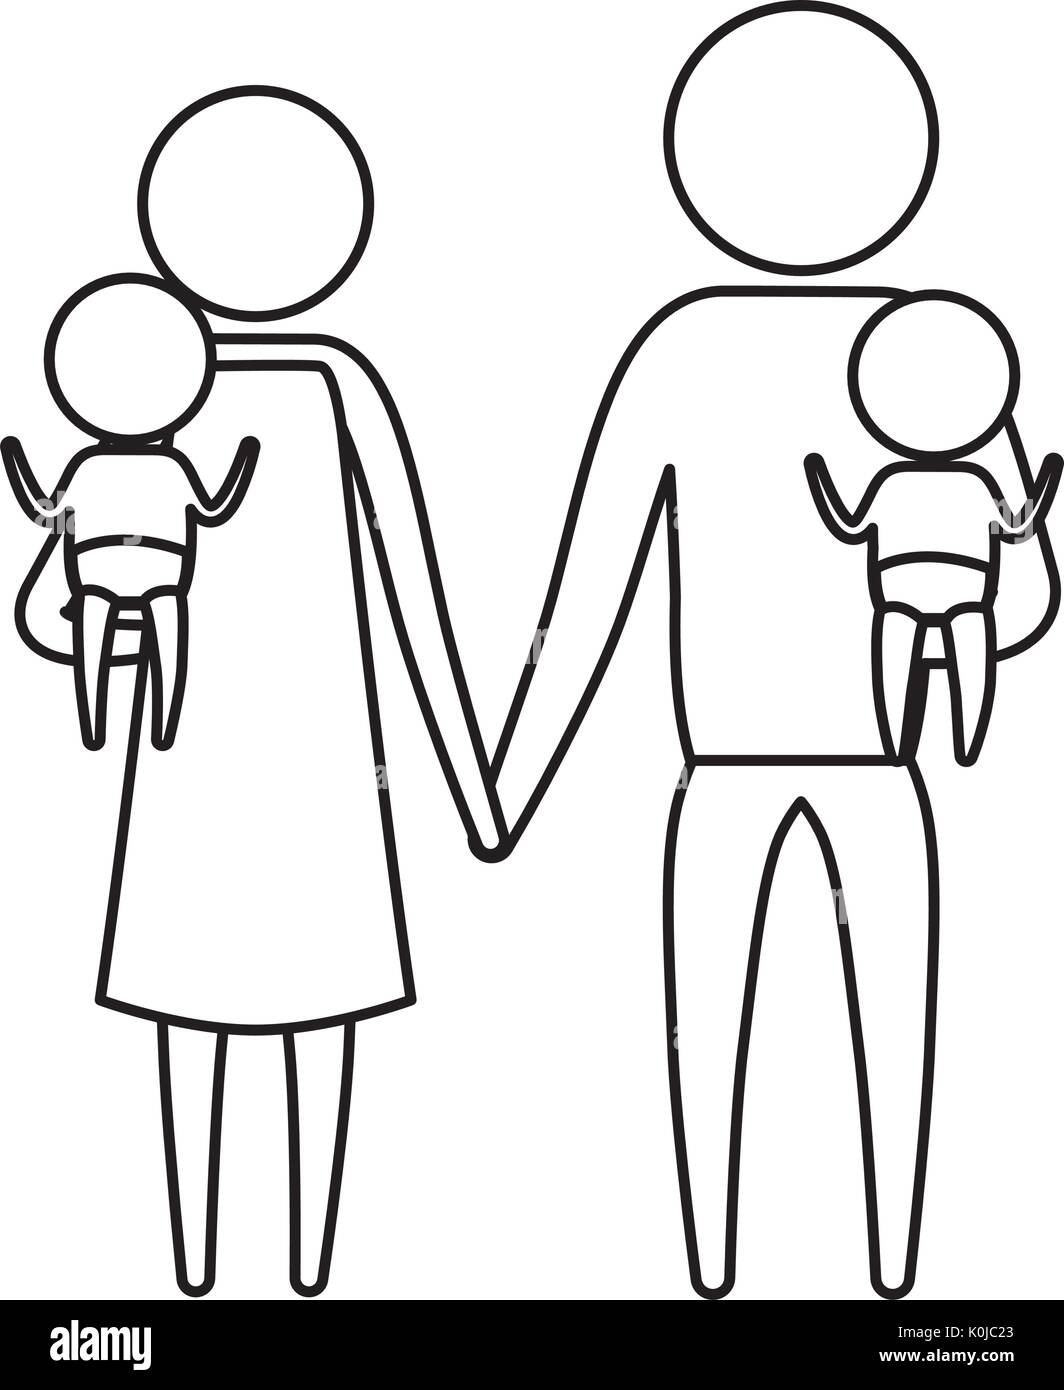 Sketch Silhouette Of Pictogram Parents With A Baby Boy And Girl